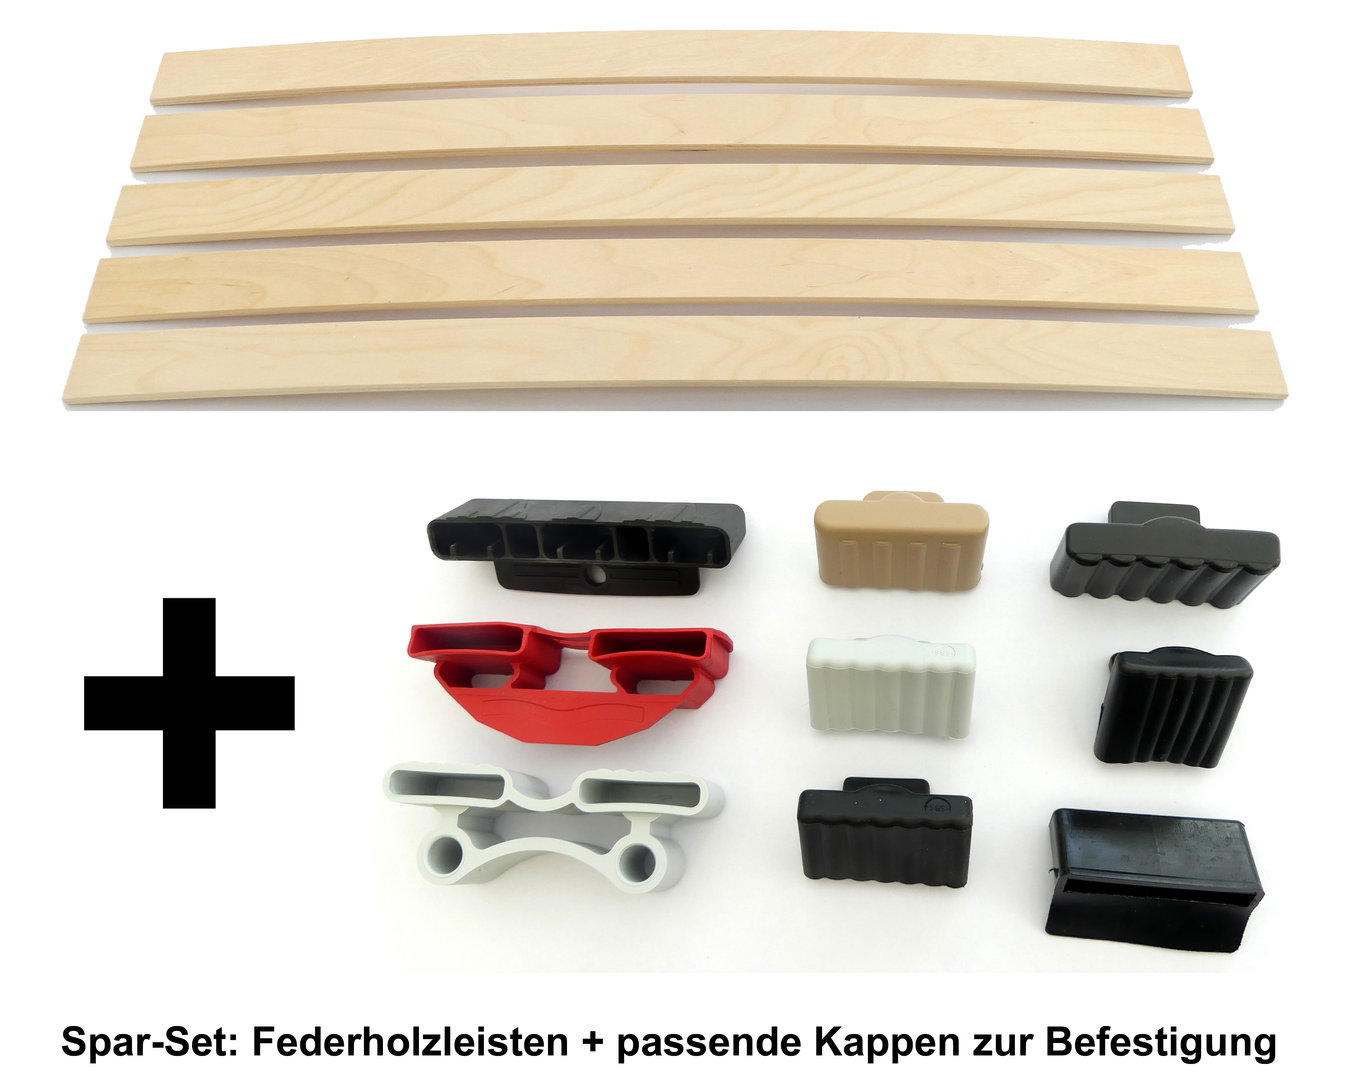 spar set befestigungsset fachhandel f r lattenrostersatzteile lattenrost. Black Bedroom Furniture Sets. Home Design Ideas